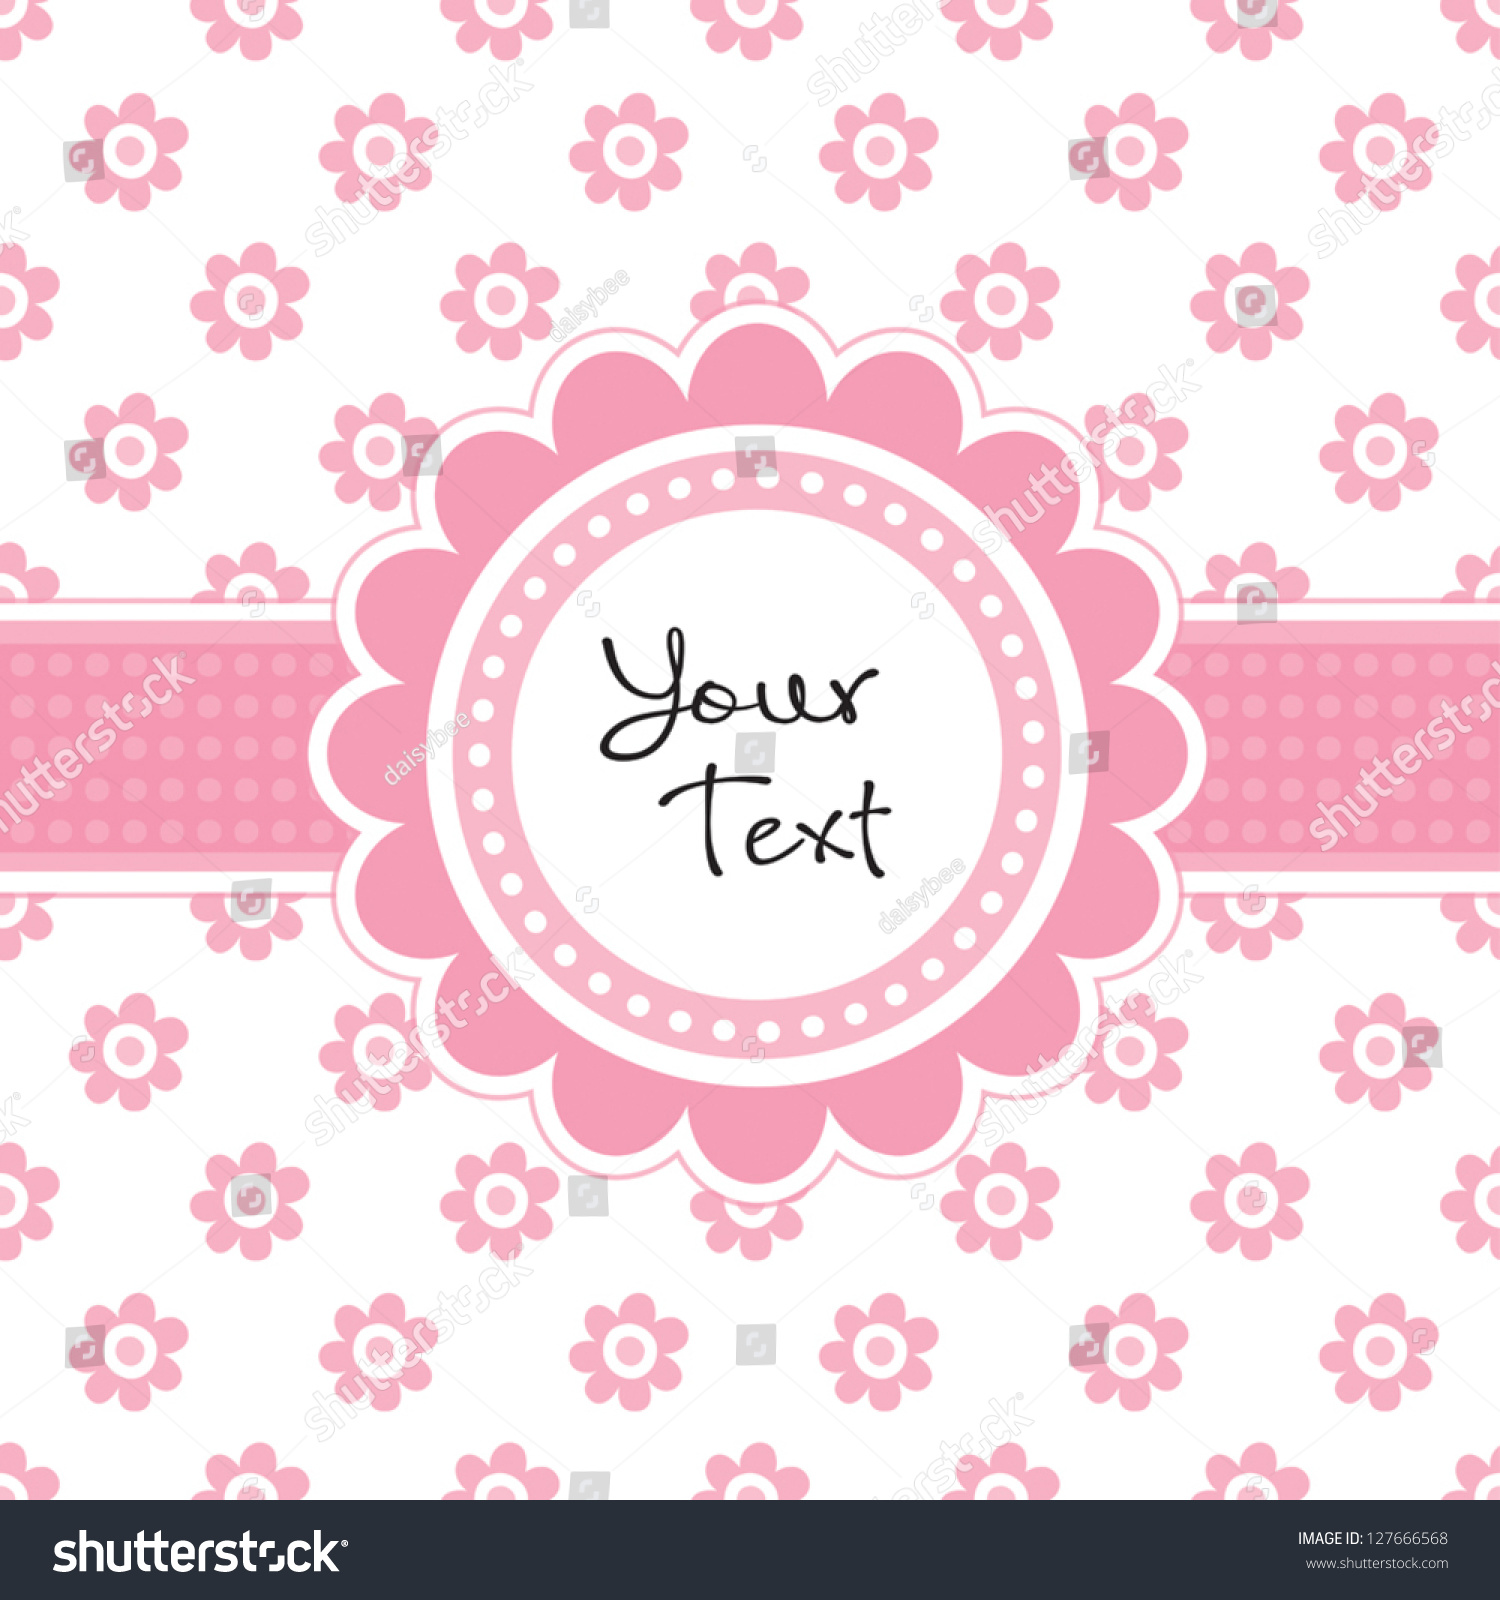 vector greeting card template cute daisy stock vector  vector greeting card template cute daisy shaped text frame and vintage floral print great